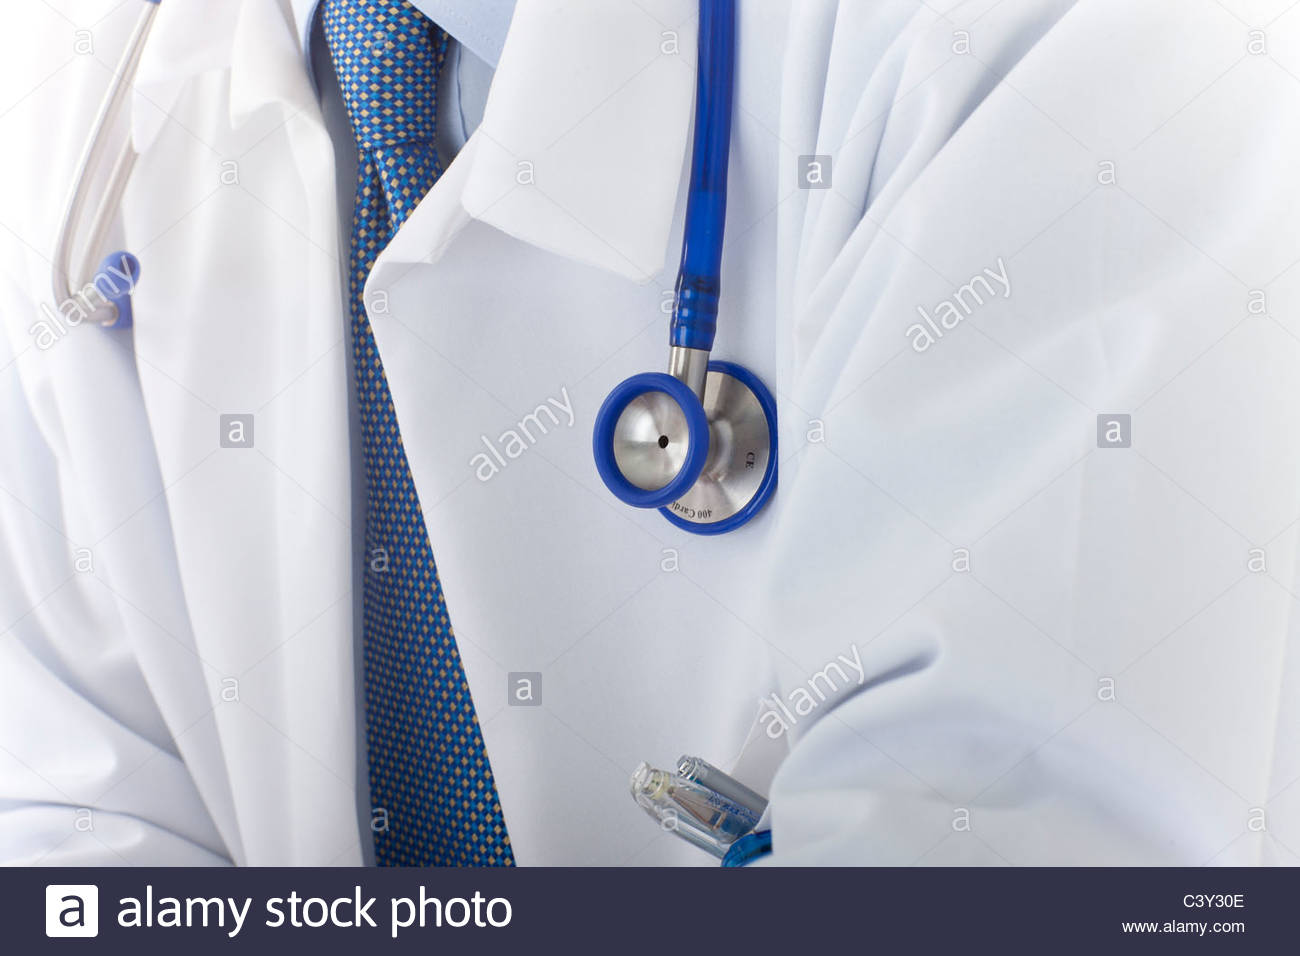 Close up of doctor's lab coat and stethoscope - Stock Image